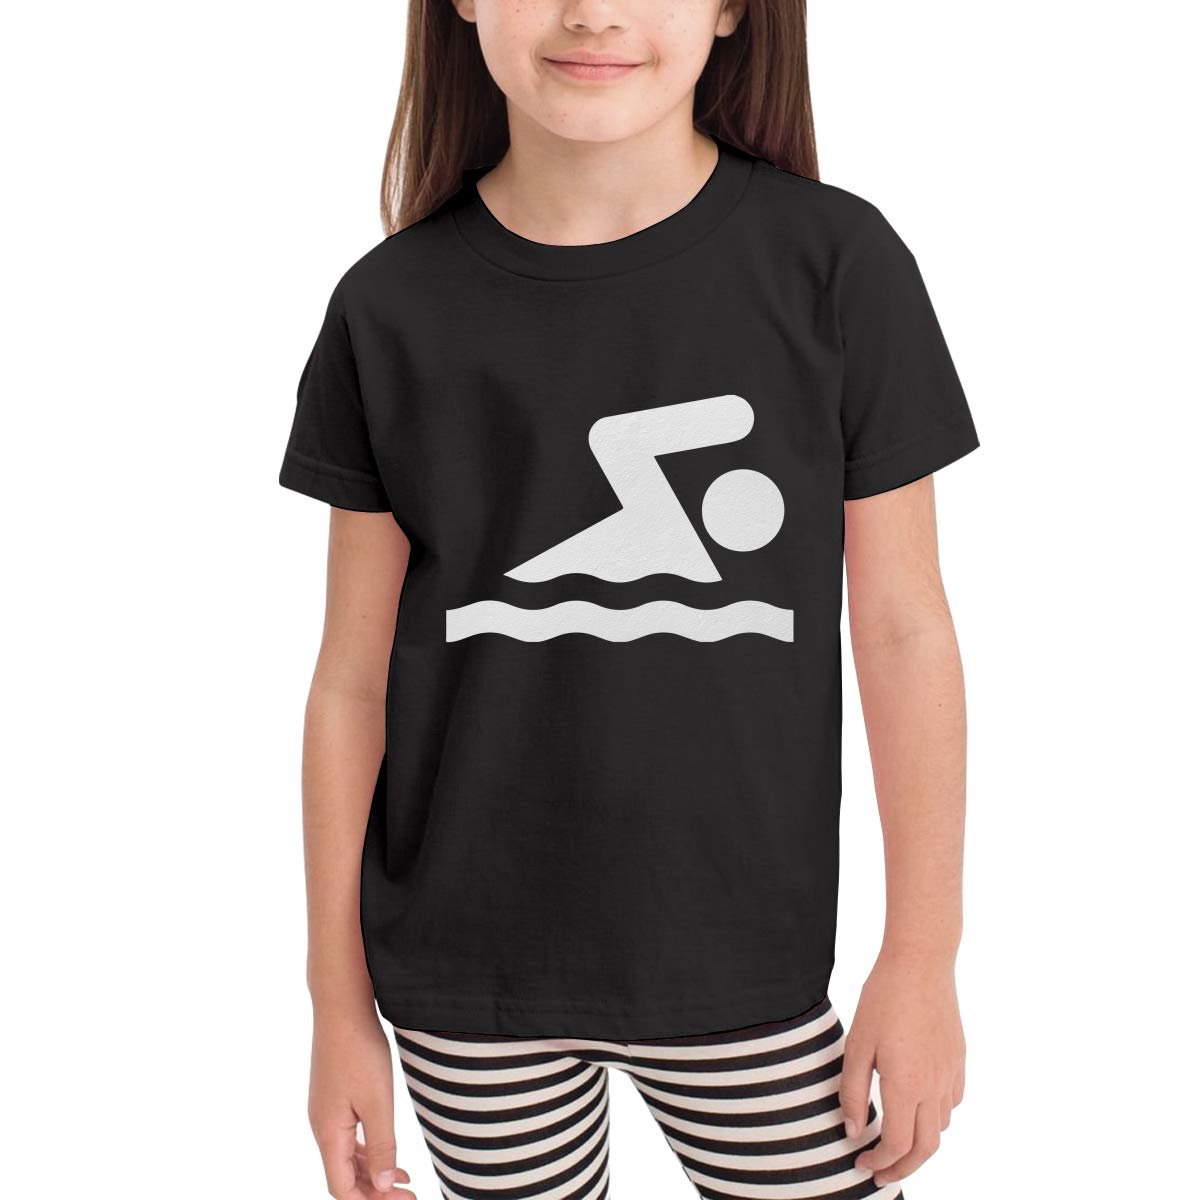 Onlybabycare Swimming Swimmer 100/% Cotton Toddler Boys Girls Kids Short Sleeve T Shirt Top Tee Clothes